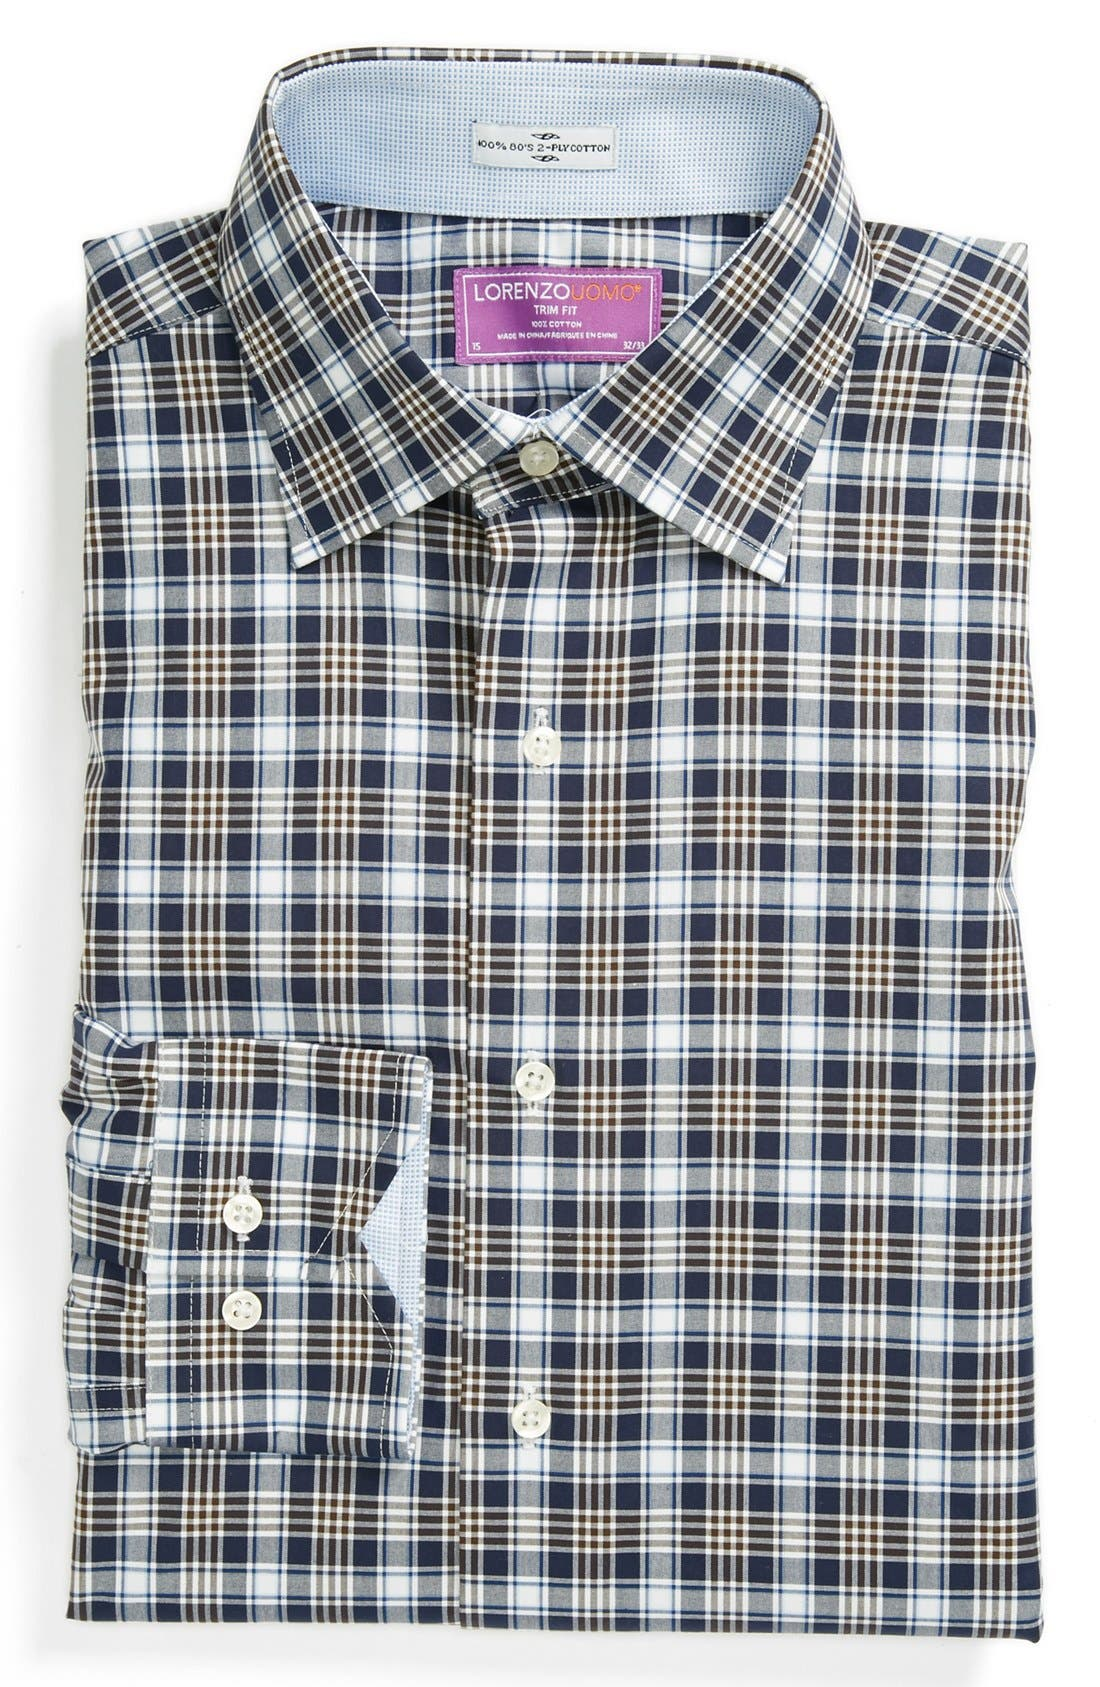 Main Image - Lorenzo Uomo Trim Fit Dress Shirt